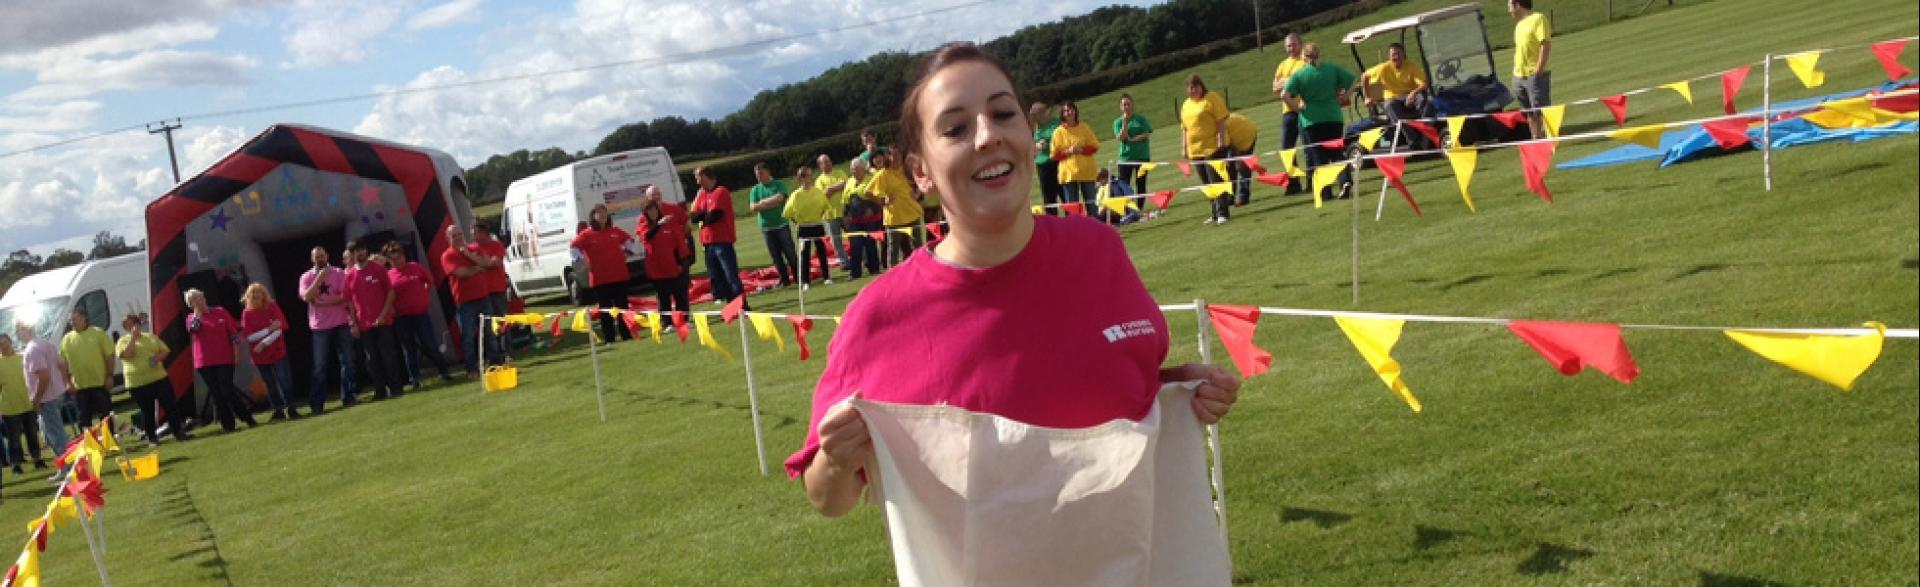 It's a Knockout, Fife, August 2014